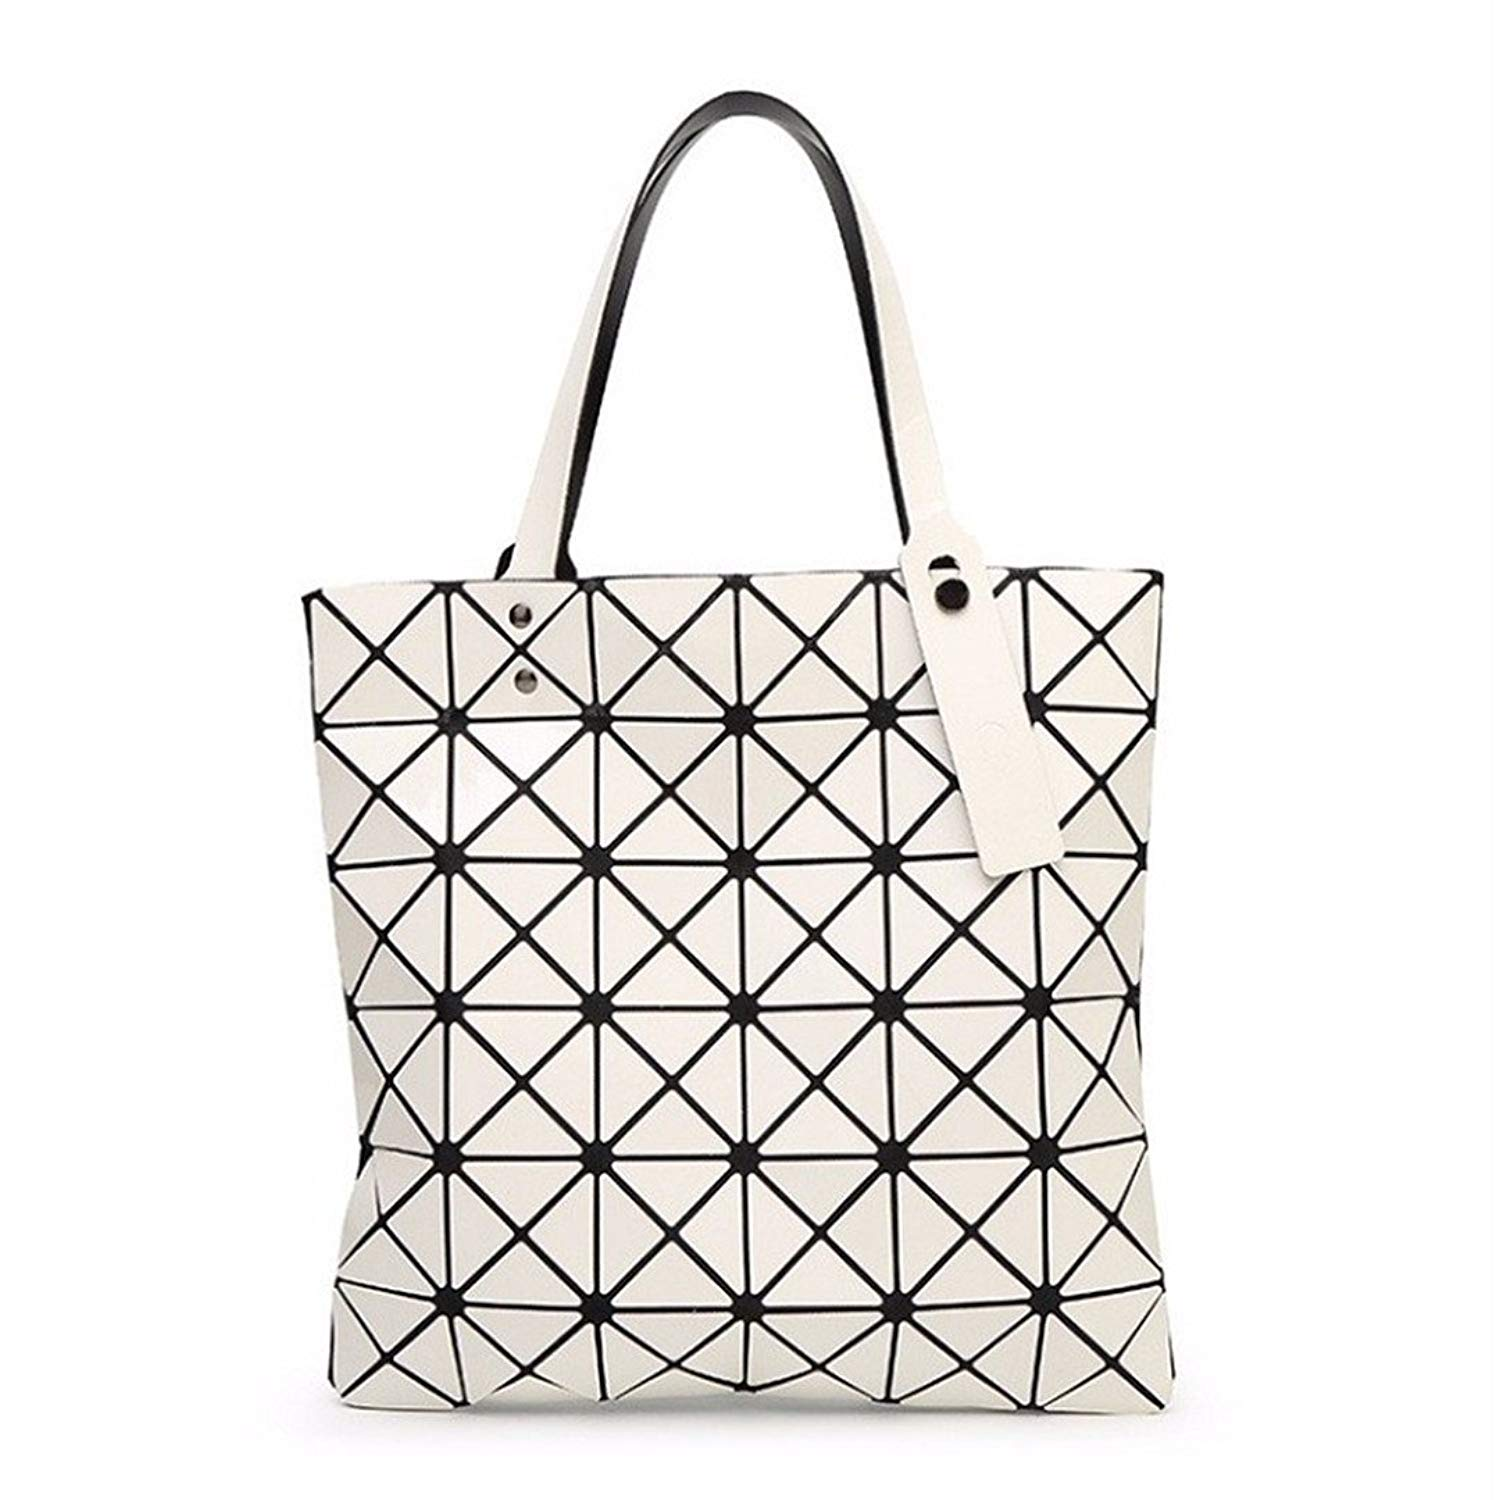 85c5b037c5ab Get Quotations · Female Folded Geometric Plaid Bag BAO BAO Fashion Casual Tote  Women Handbag Mochila Shoulder Bag